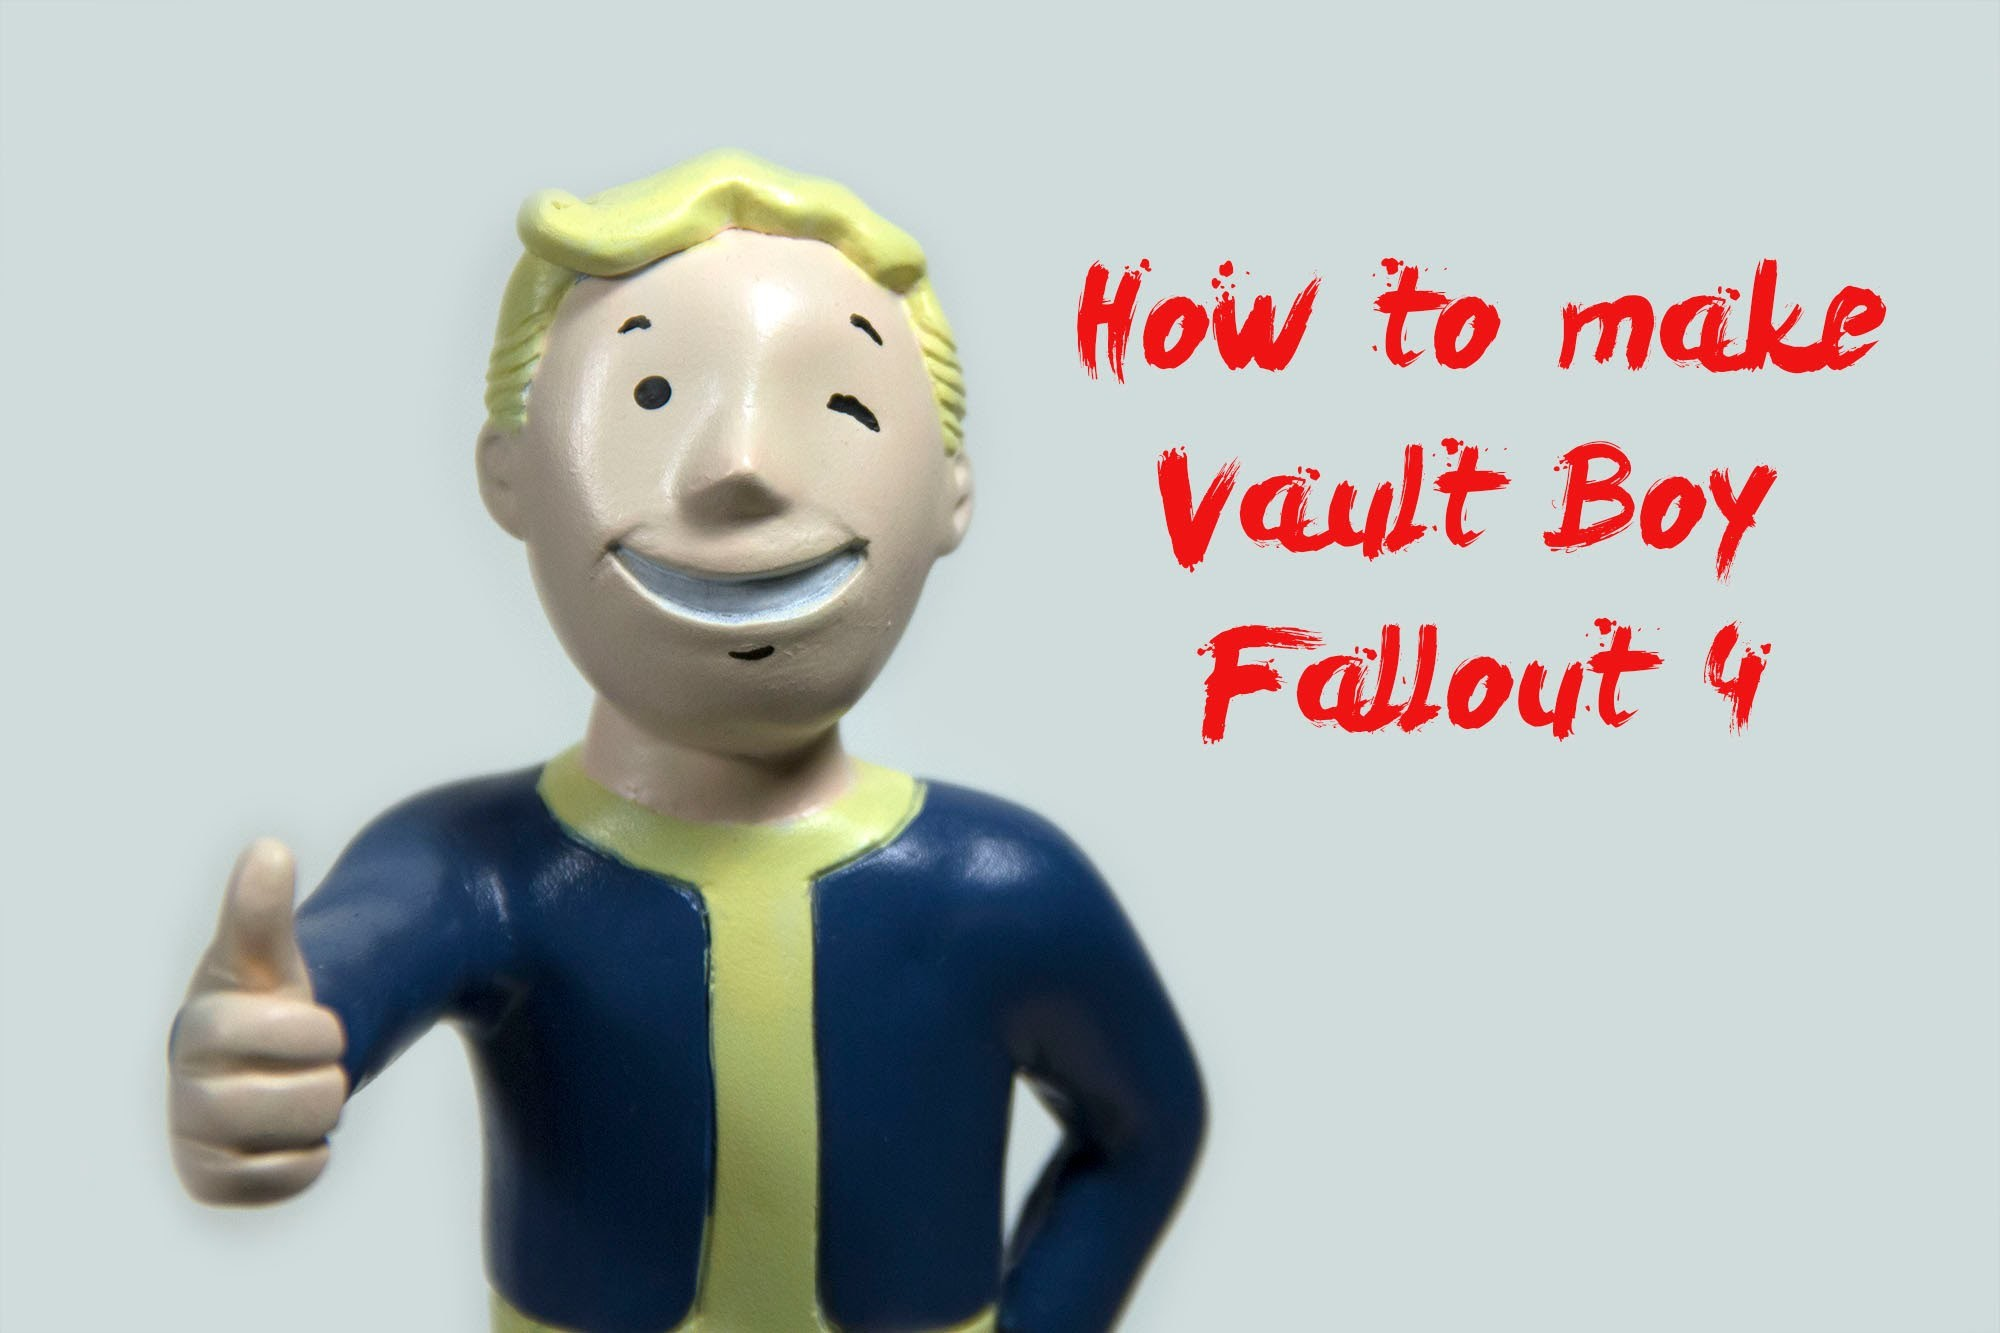 How to Make Polymer Clay Vault Boy Figure - Fallout 4 Tutorial